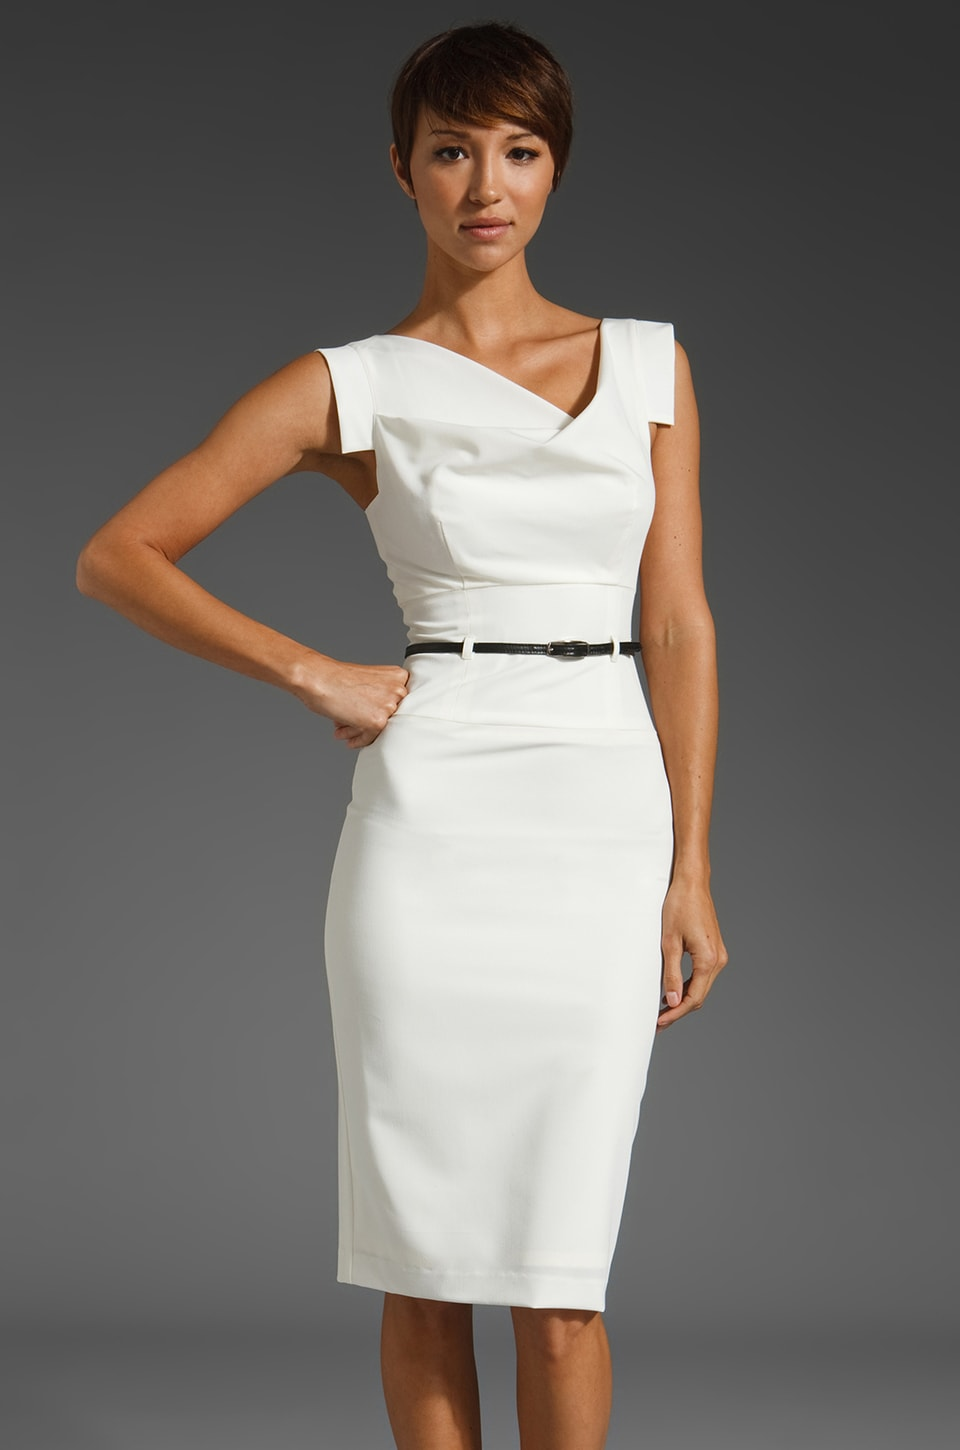 Black Halo Classic Jackie O Dress in White